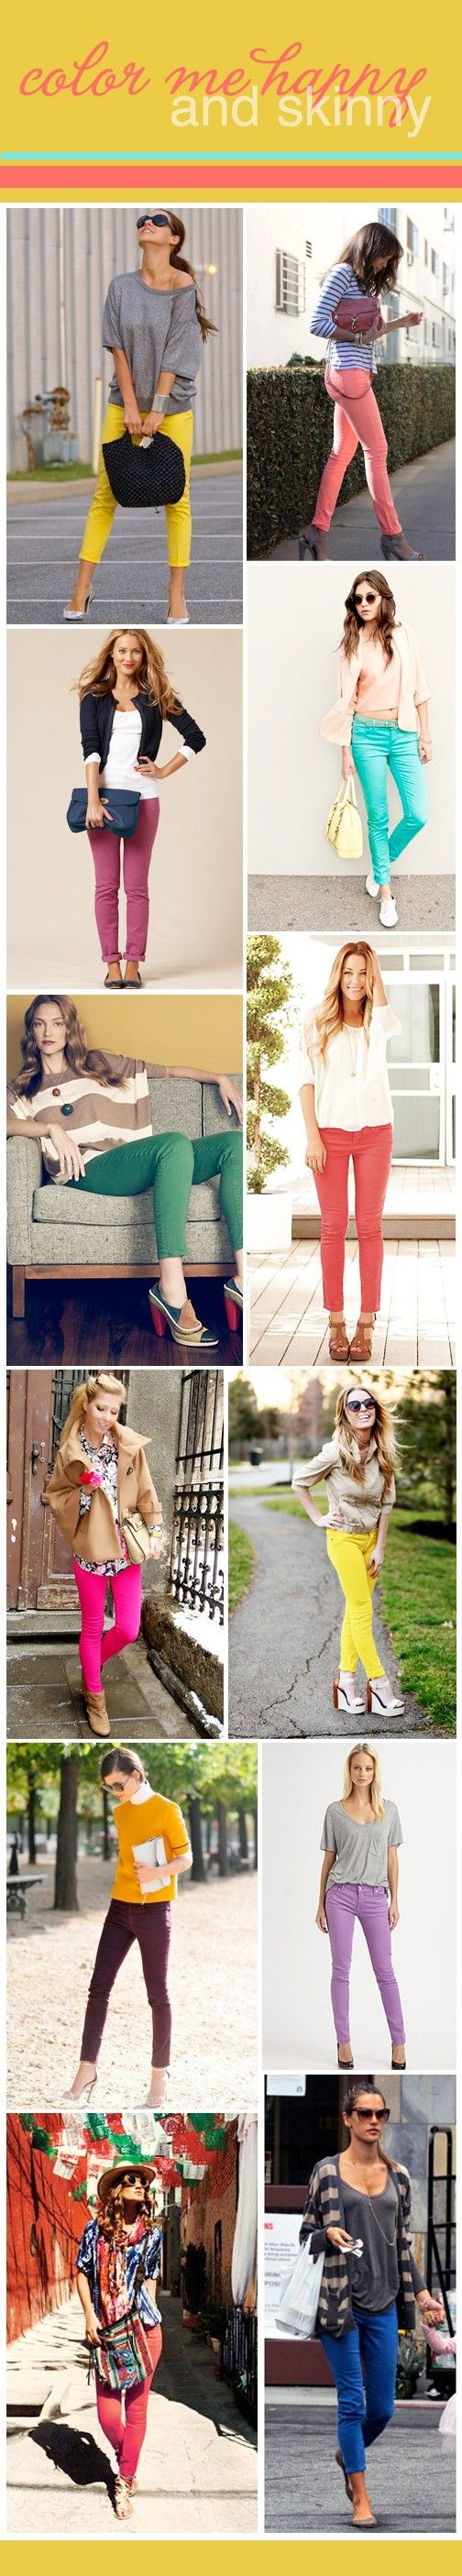 colored jeans: Colored Pants, Idea, Colored Skinnies, Style, Colorful Skinny, Colored Denim, Color Skinny, Colored Skinny Jeans, Colored Jeans